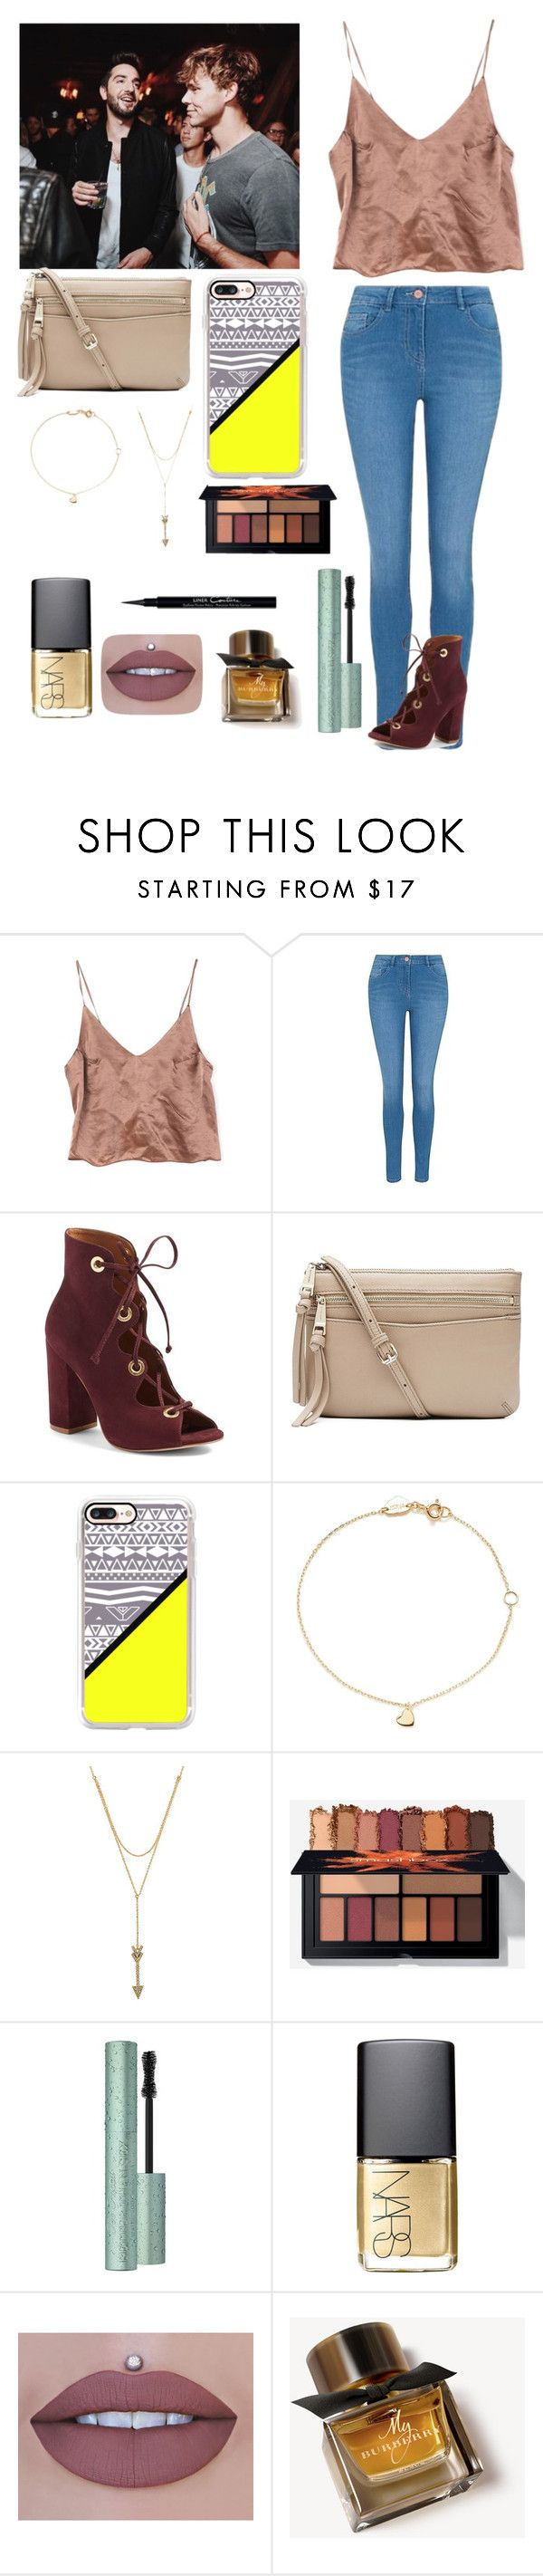 """""""Meeting all of Ashton friends"""" by joelene-garcia ❤ liked on Polyvore featuring George, Steve Madden, Witchery, Casetify, Estella Bartlett, Rebecca Minkoff, Too Faced Cosmetics, NARS Cosmetics, Burberry and Givenchy"""